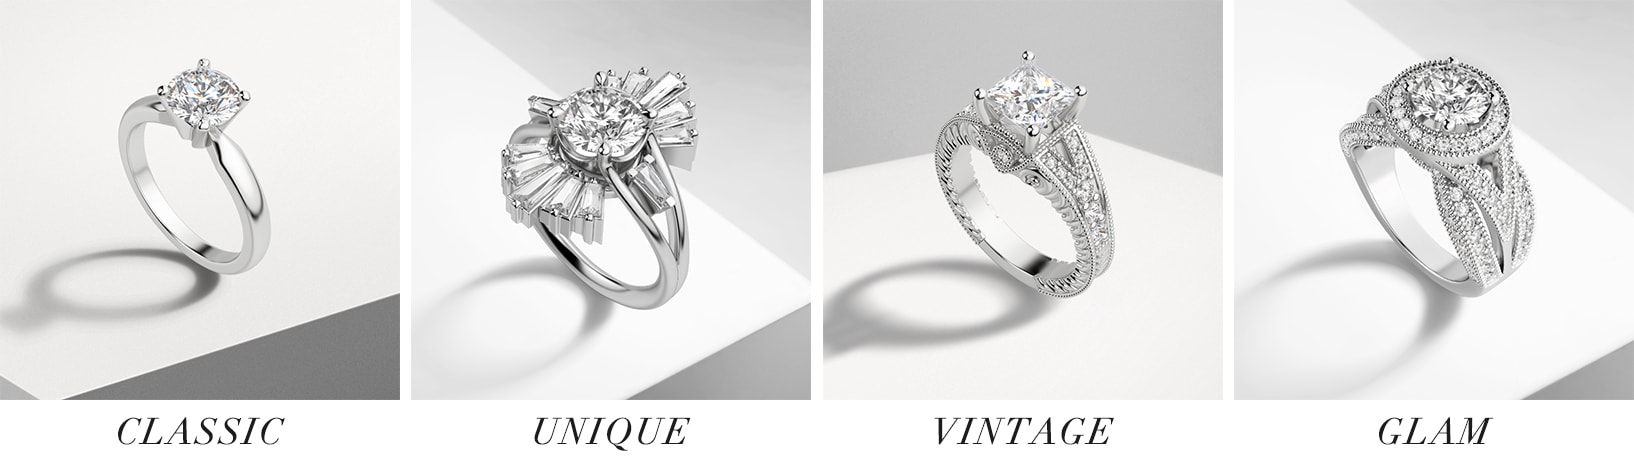 Classic, unique, vintage and glam style simulated diamond engagement rings.